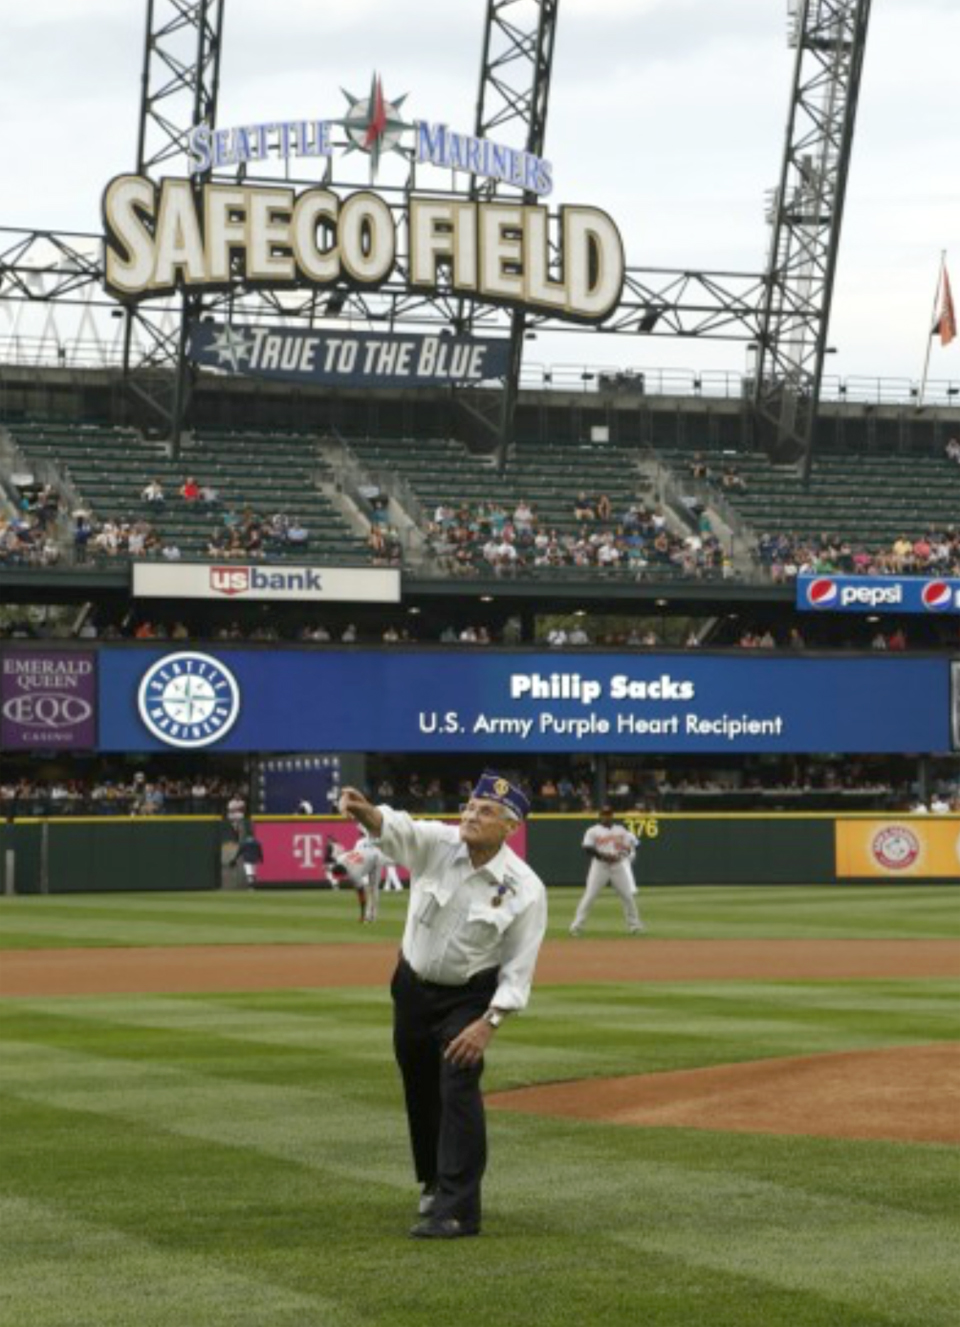 Purple Heart Night at the Mariners: Our Own Phil Sacks Throws Out First Pitch